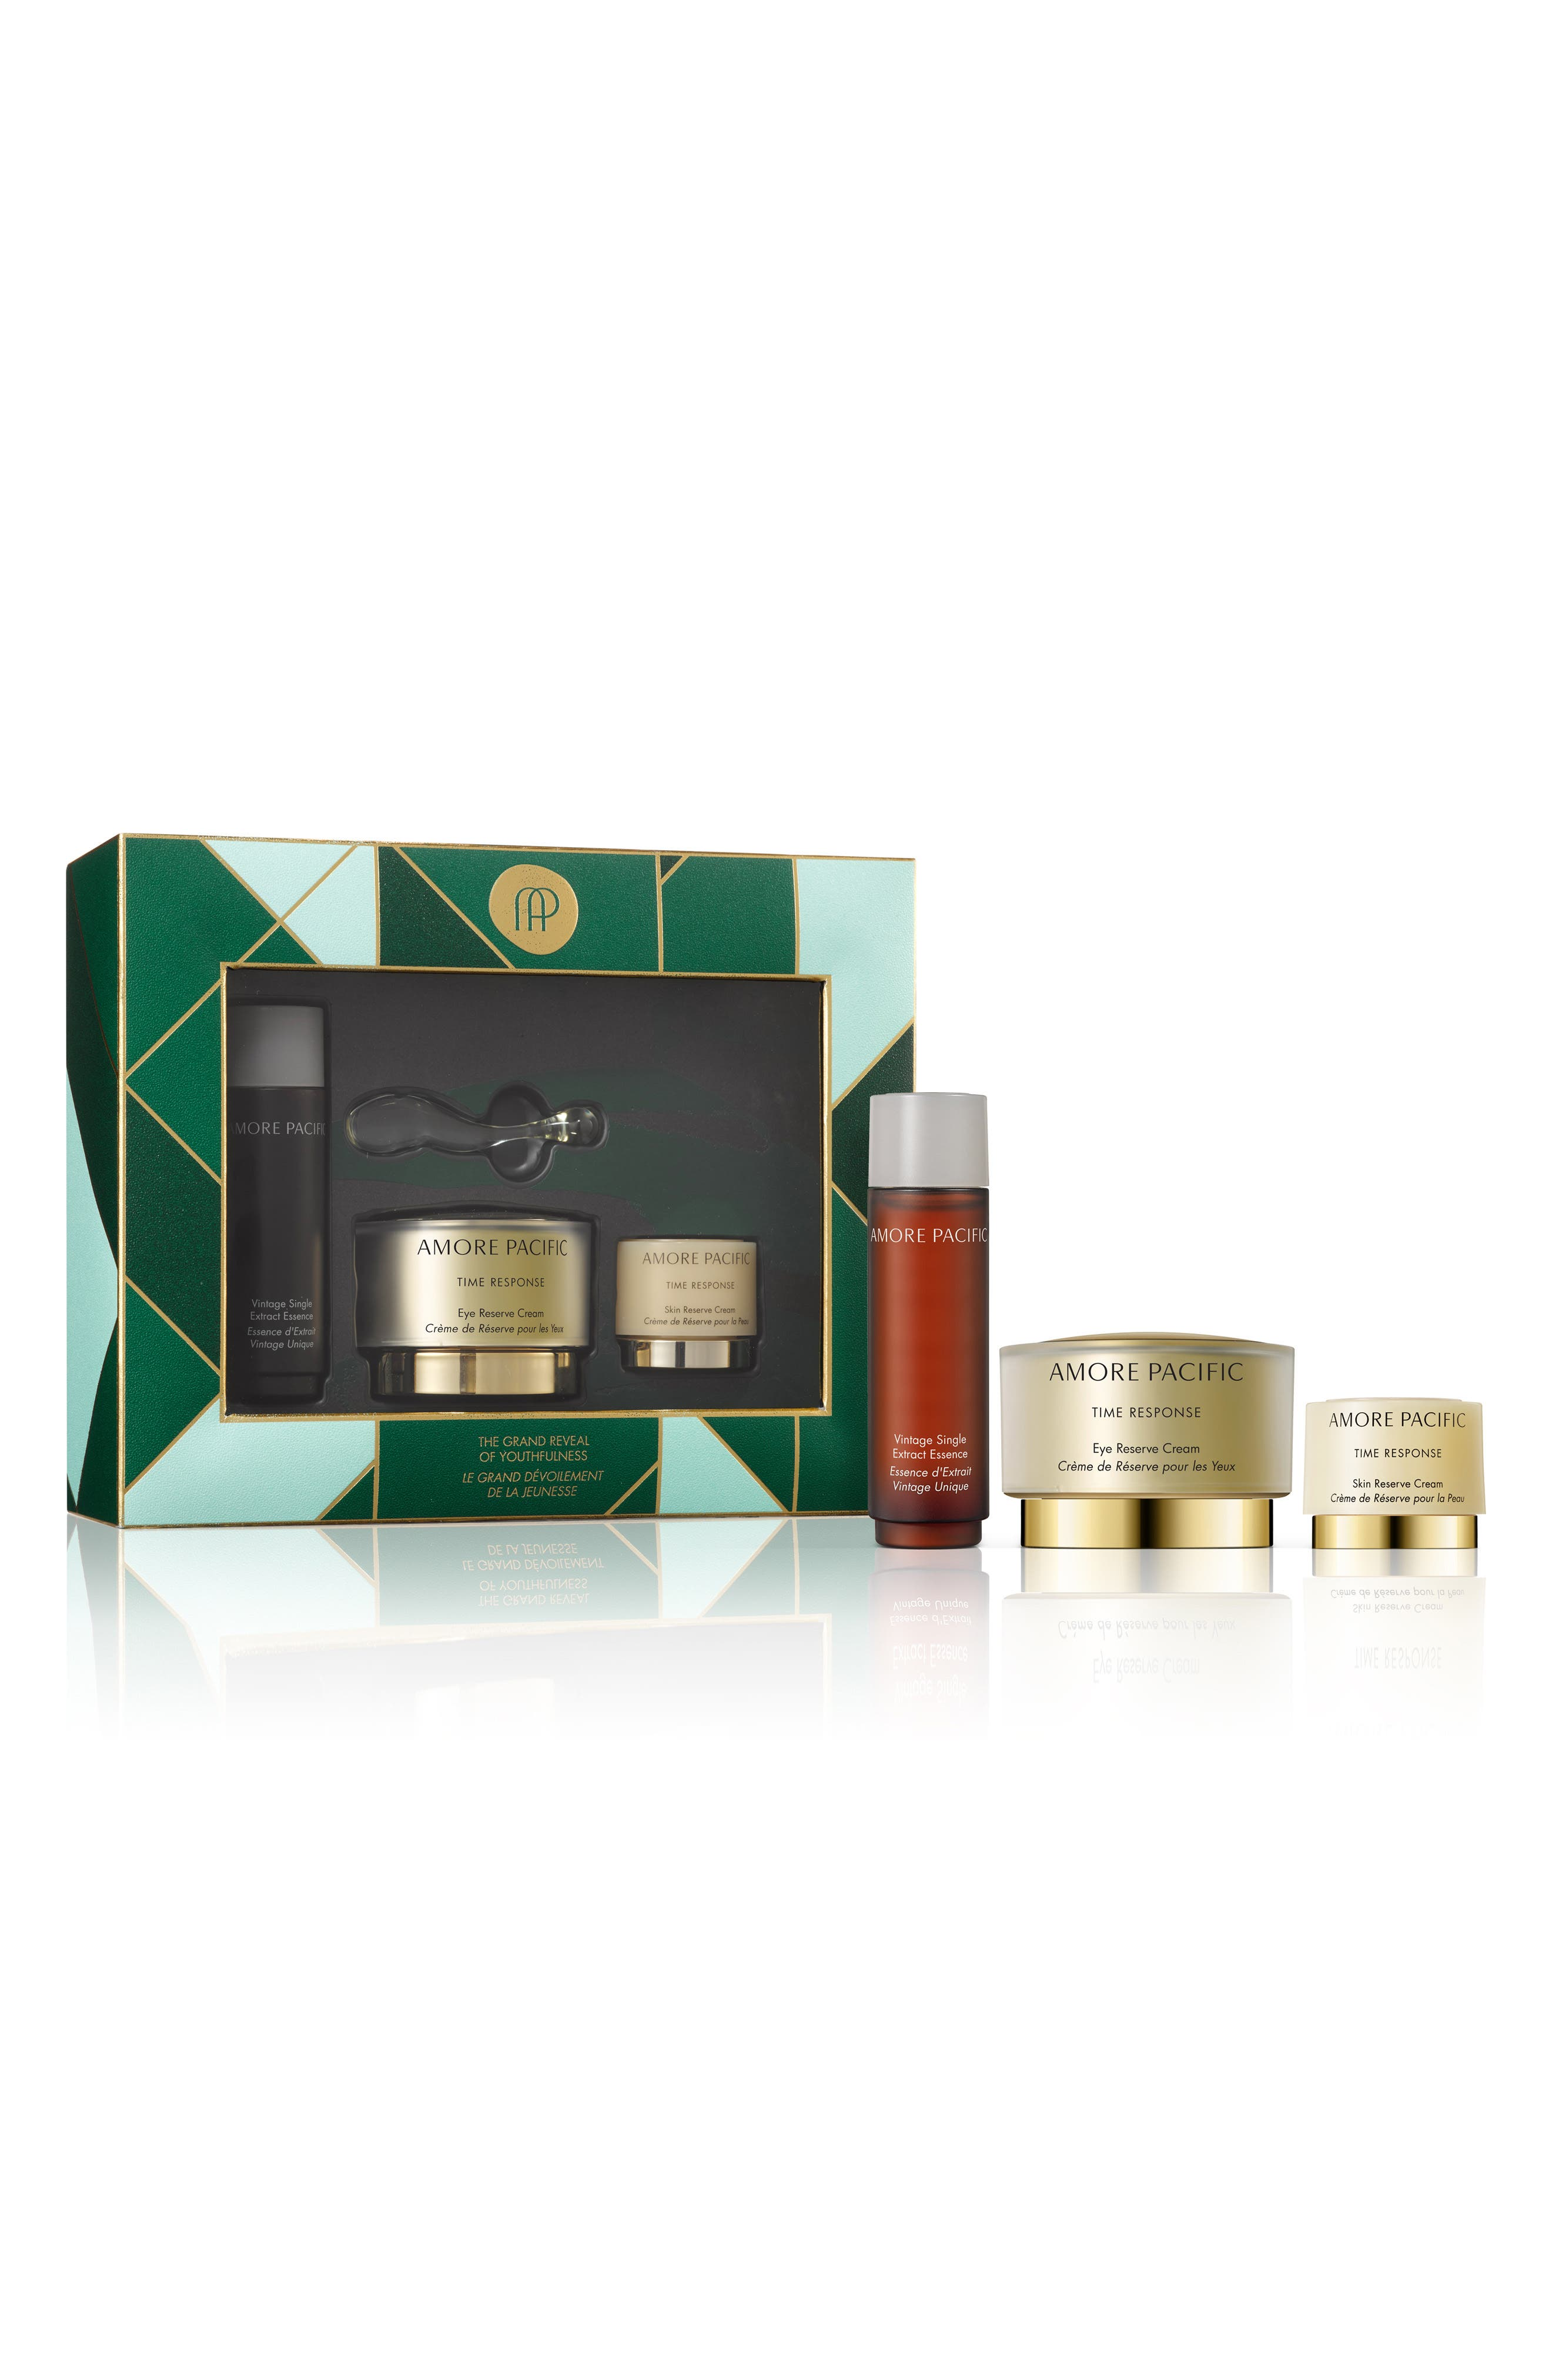 The Grand Reveal Of Youthfulness Set